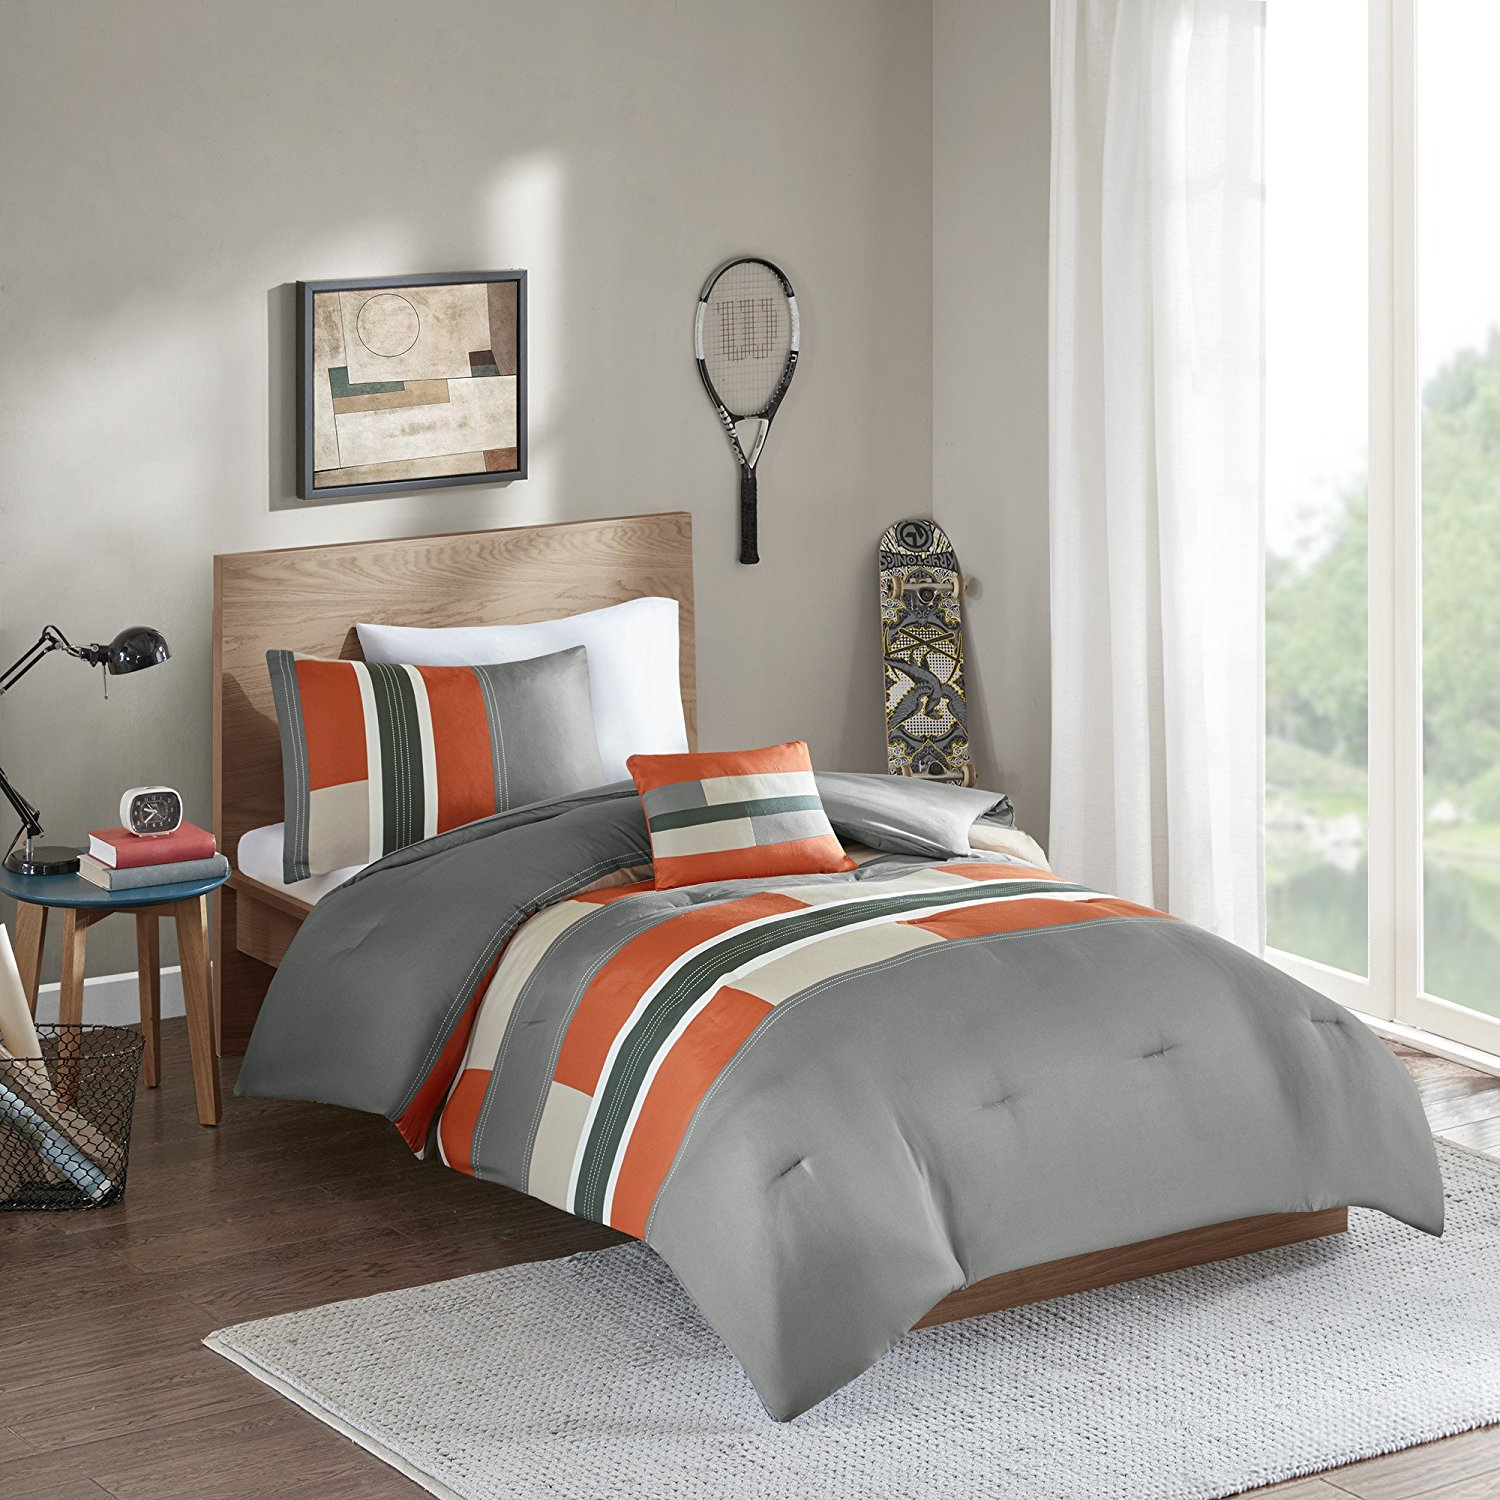 Comfort Spaces - Pierre Comforter Set - 3 Piece - Gray/Orange - Multi-Color pipeline Panels - Perfect For Dormitory - Boys - Twin/Twin XL size, includes 1 Comforter, 1 Sham, 1 Decorative Pillow